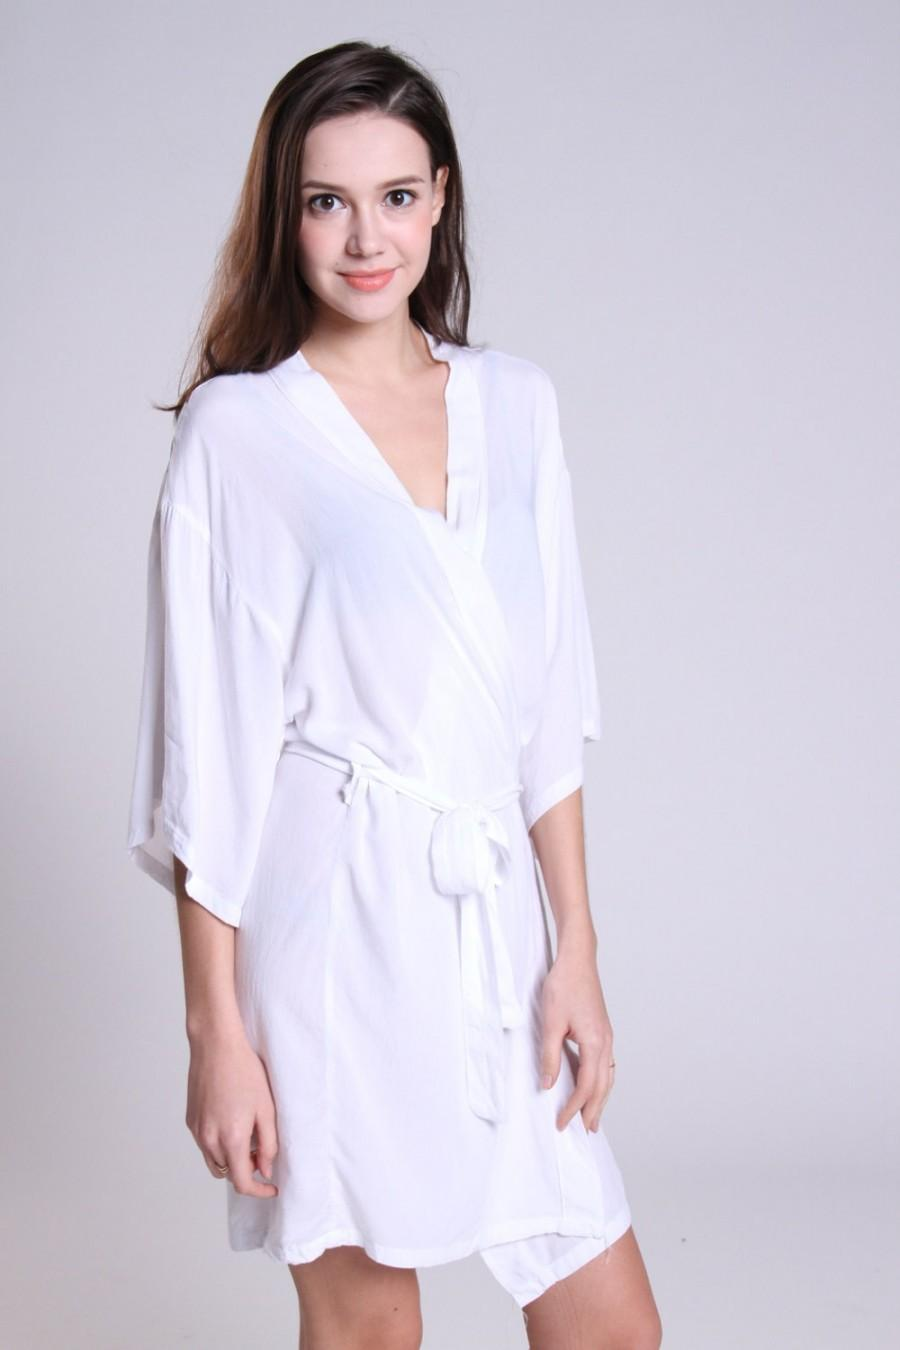 9623bc99c3 White cotton robe night dresses cotton nightwear bride gifts pajama lady  sleepwear wholesale ladies night gowns women pajamas cotton SM002